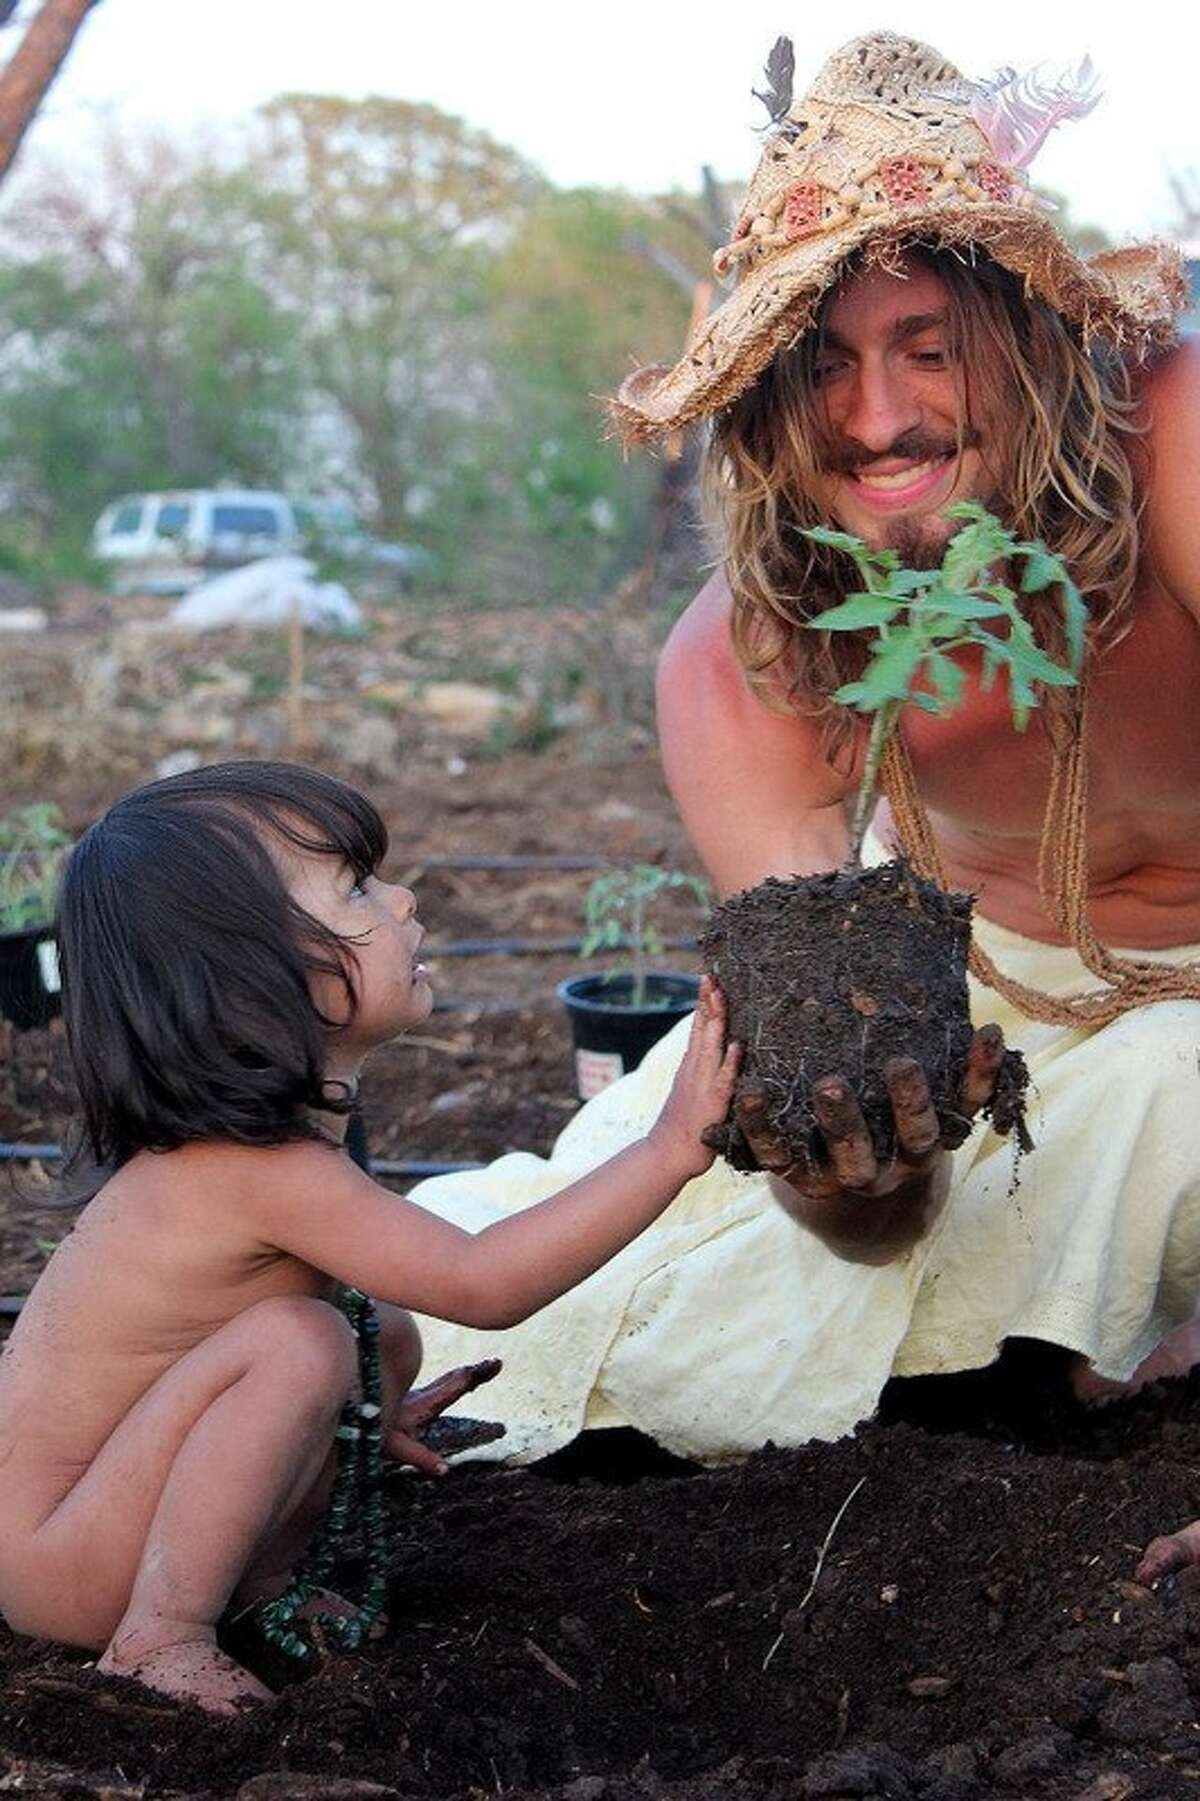 The Garden of Eden is a farming commune in Arlington, Texas, where residents help raise food and live off the grid. The group, led by founder Quinn Eaker, is suing the City of Arlington for a 2013 raid that saw residents handcuffed for an entire day, yet failed to produce any of the drugs or weapons named in a search warrant.